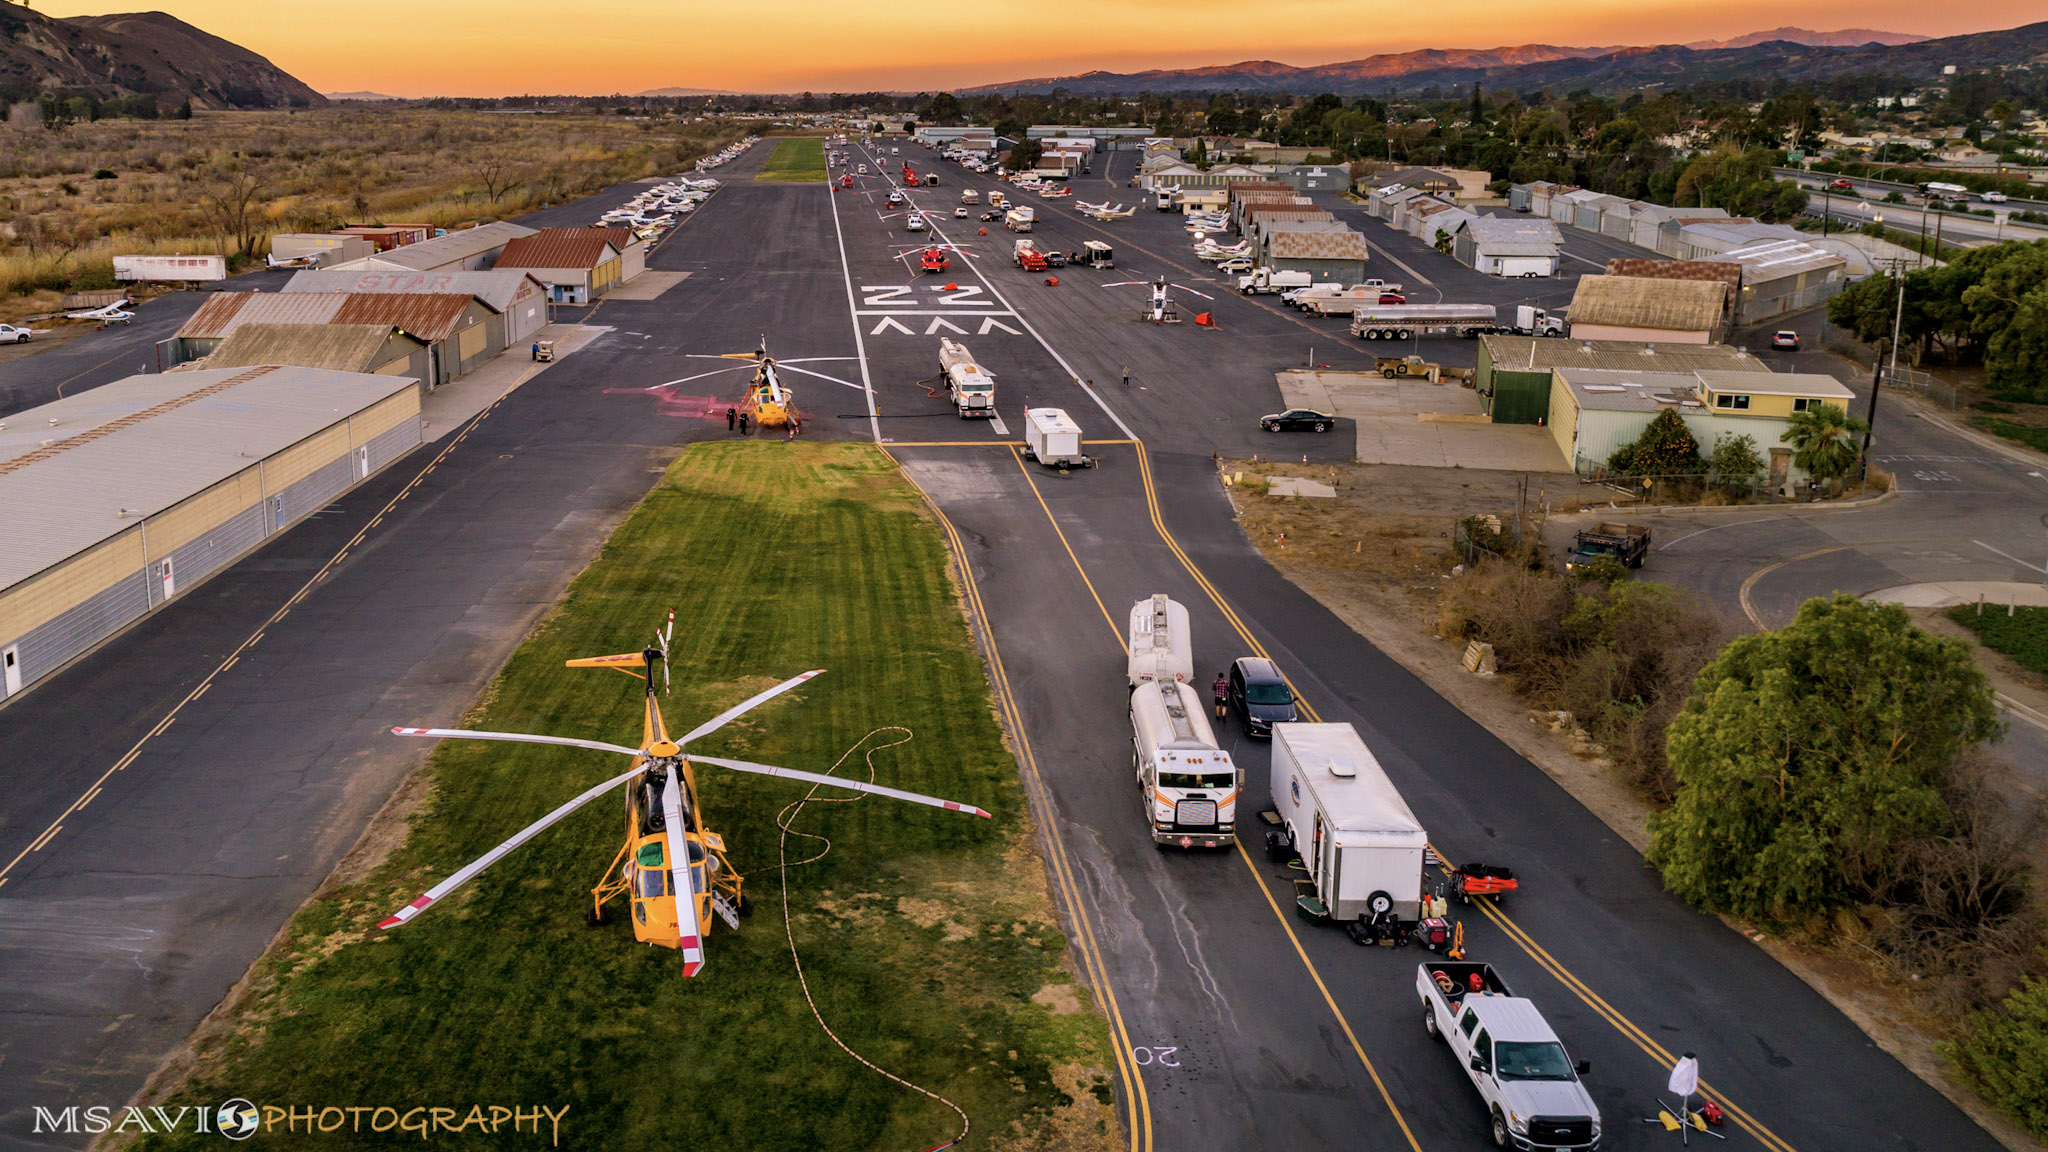 Helicopter firefighting operations based at California's Santa Paula Airport have helped save lives and property in the midst of the Thomas Fire burning nearby. Photo by Mike Salas, MSAVI Photography and Focal Flight.